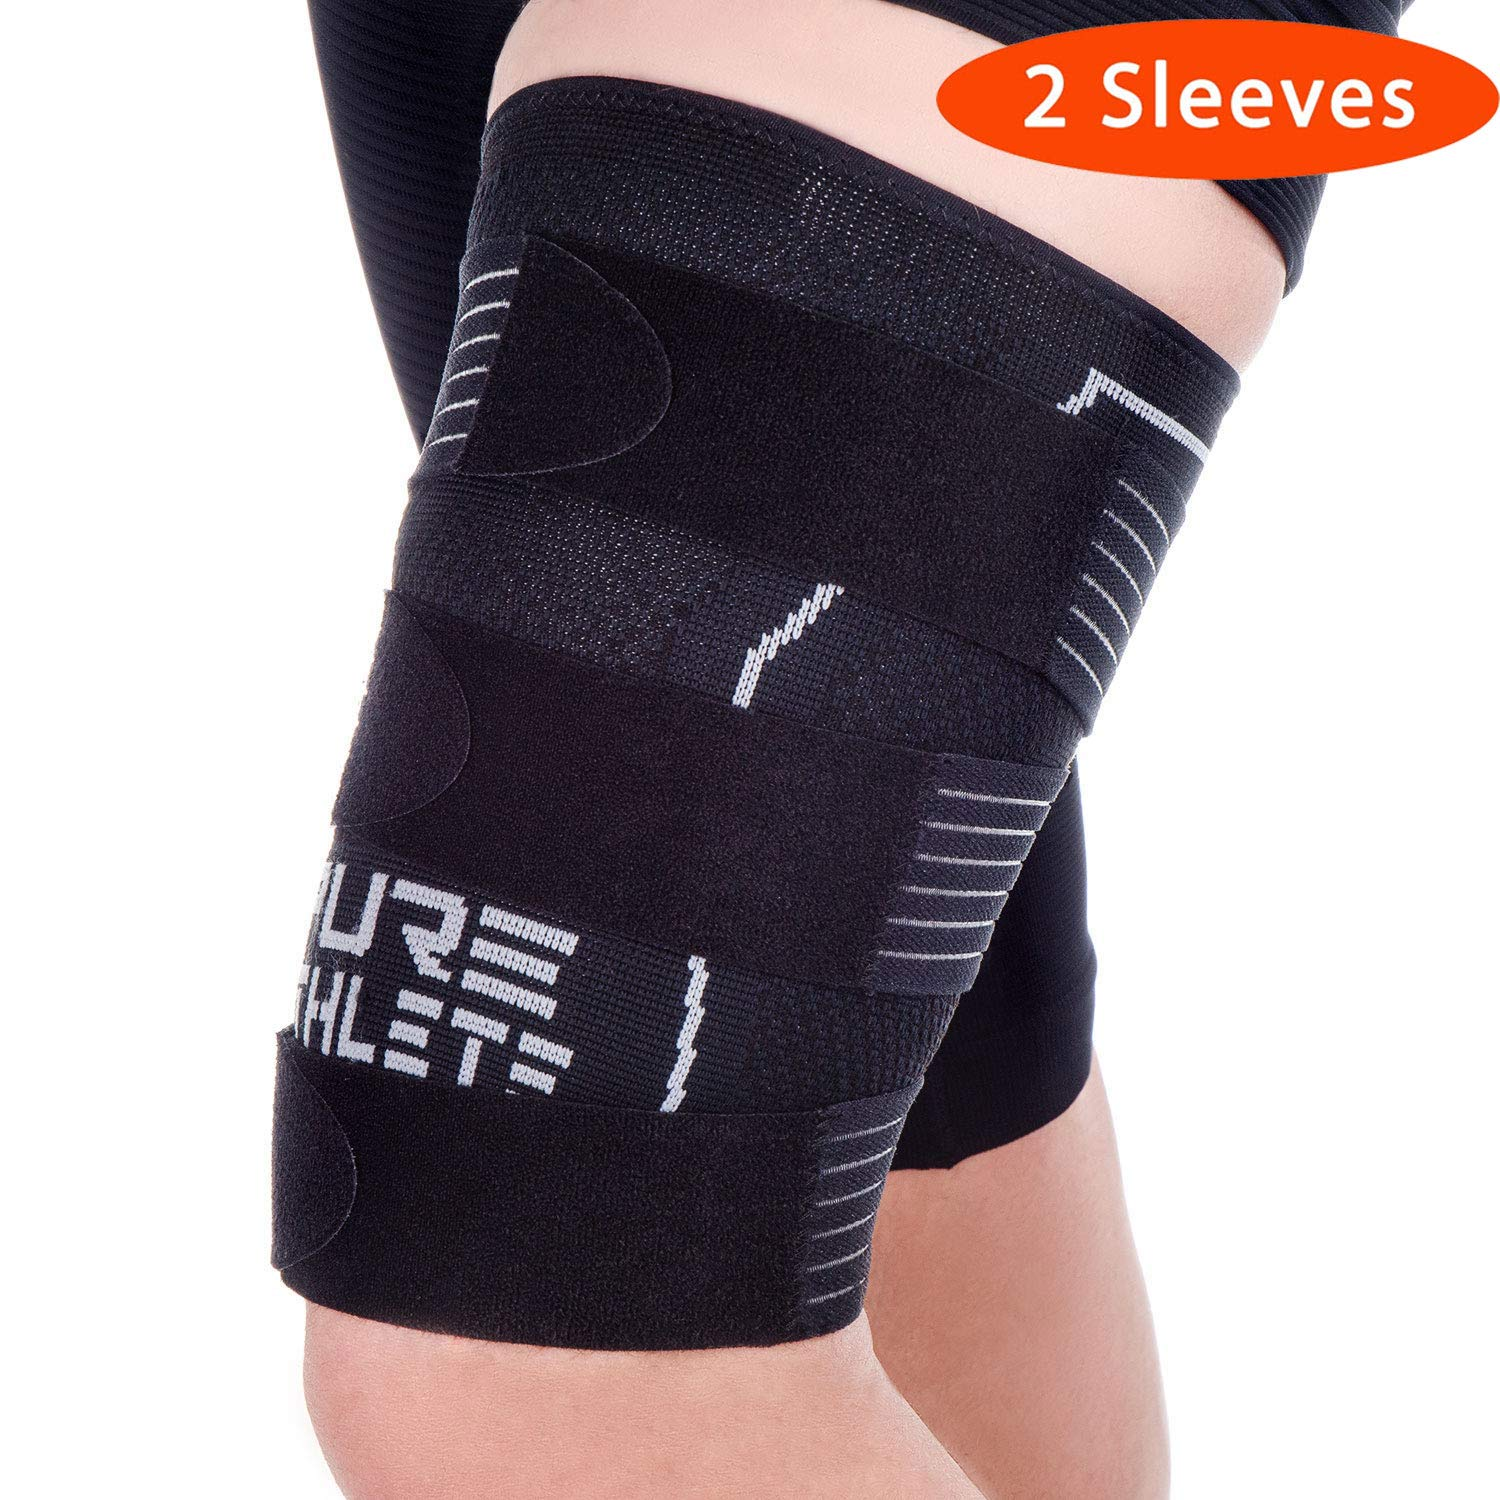 Pure Athlete Thigh Compression Sleeve - Adjustable Straps Quad Wrap Support Brace, Hamstring Upper Leg (2 Sleeves - Black, Small) by Pure Athlete